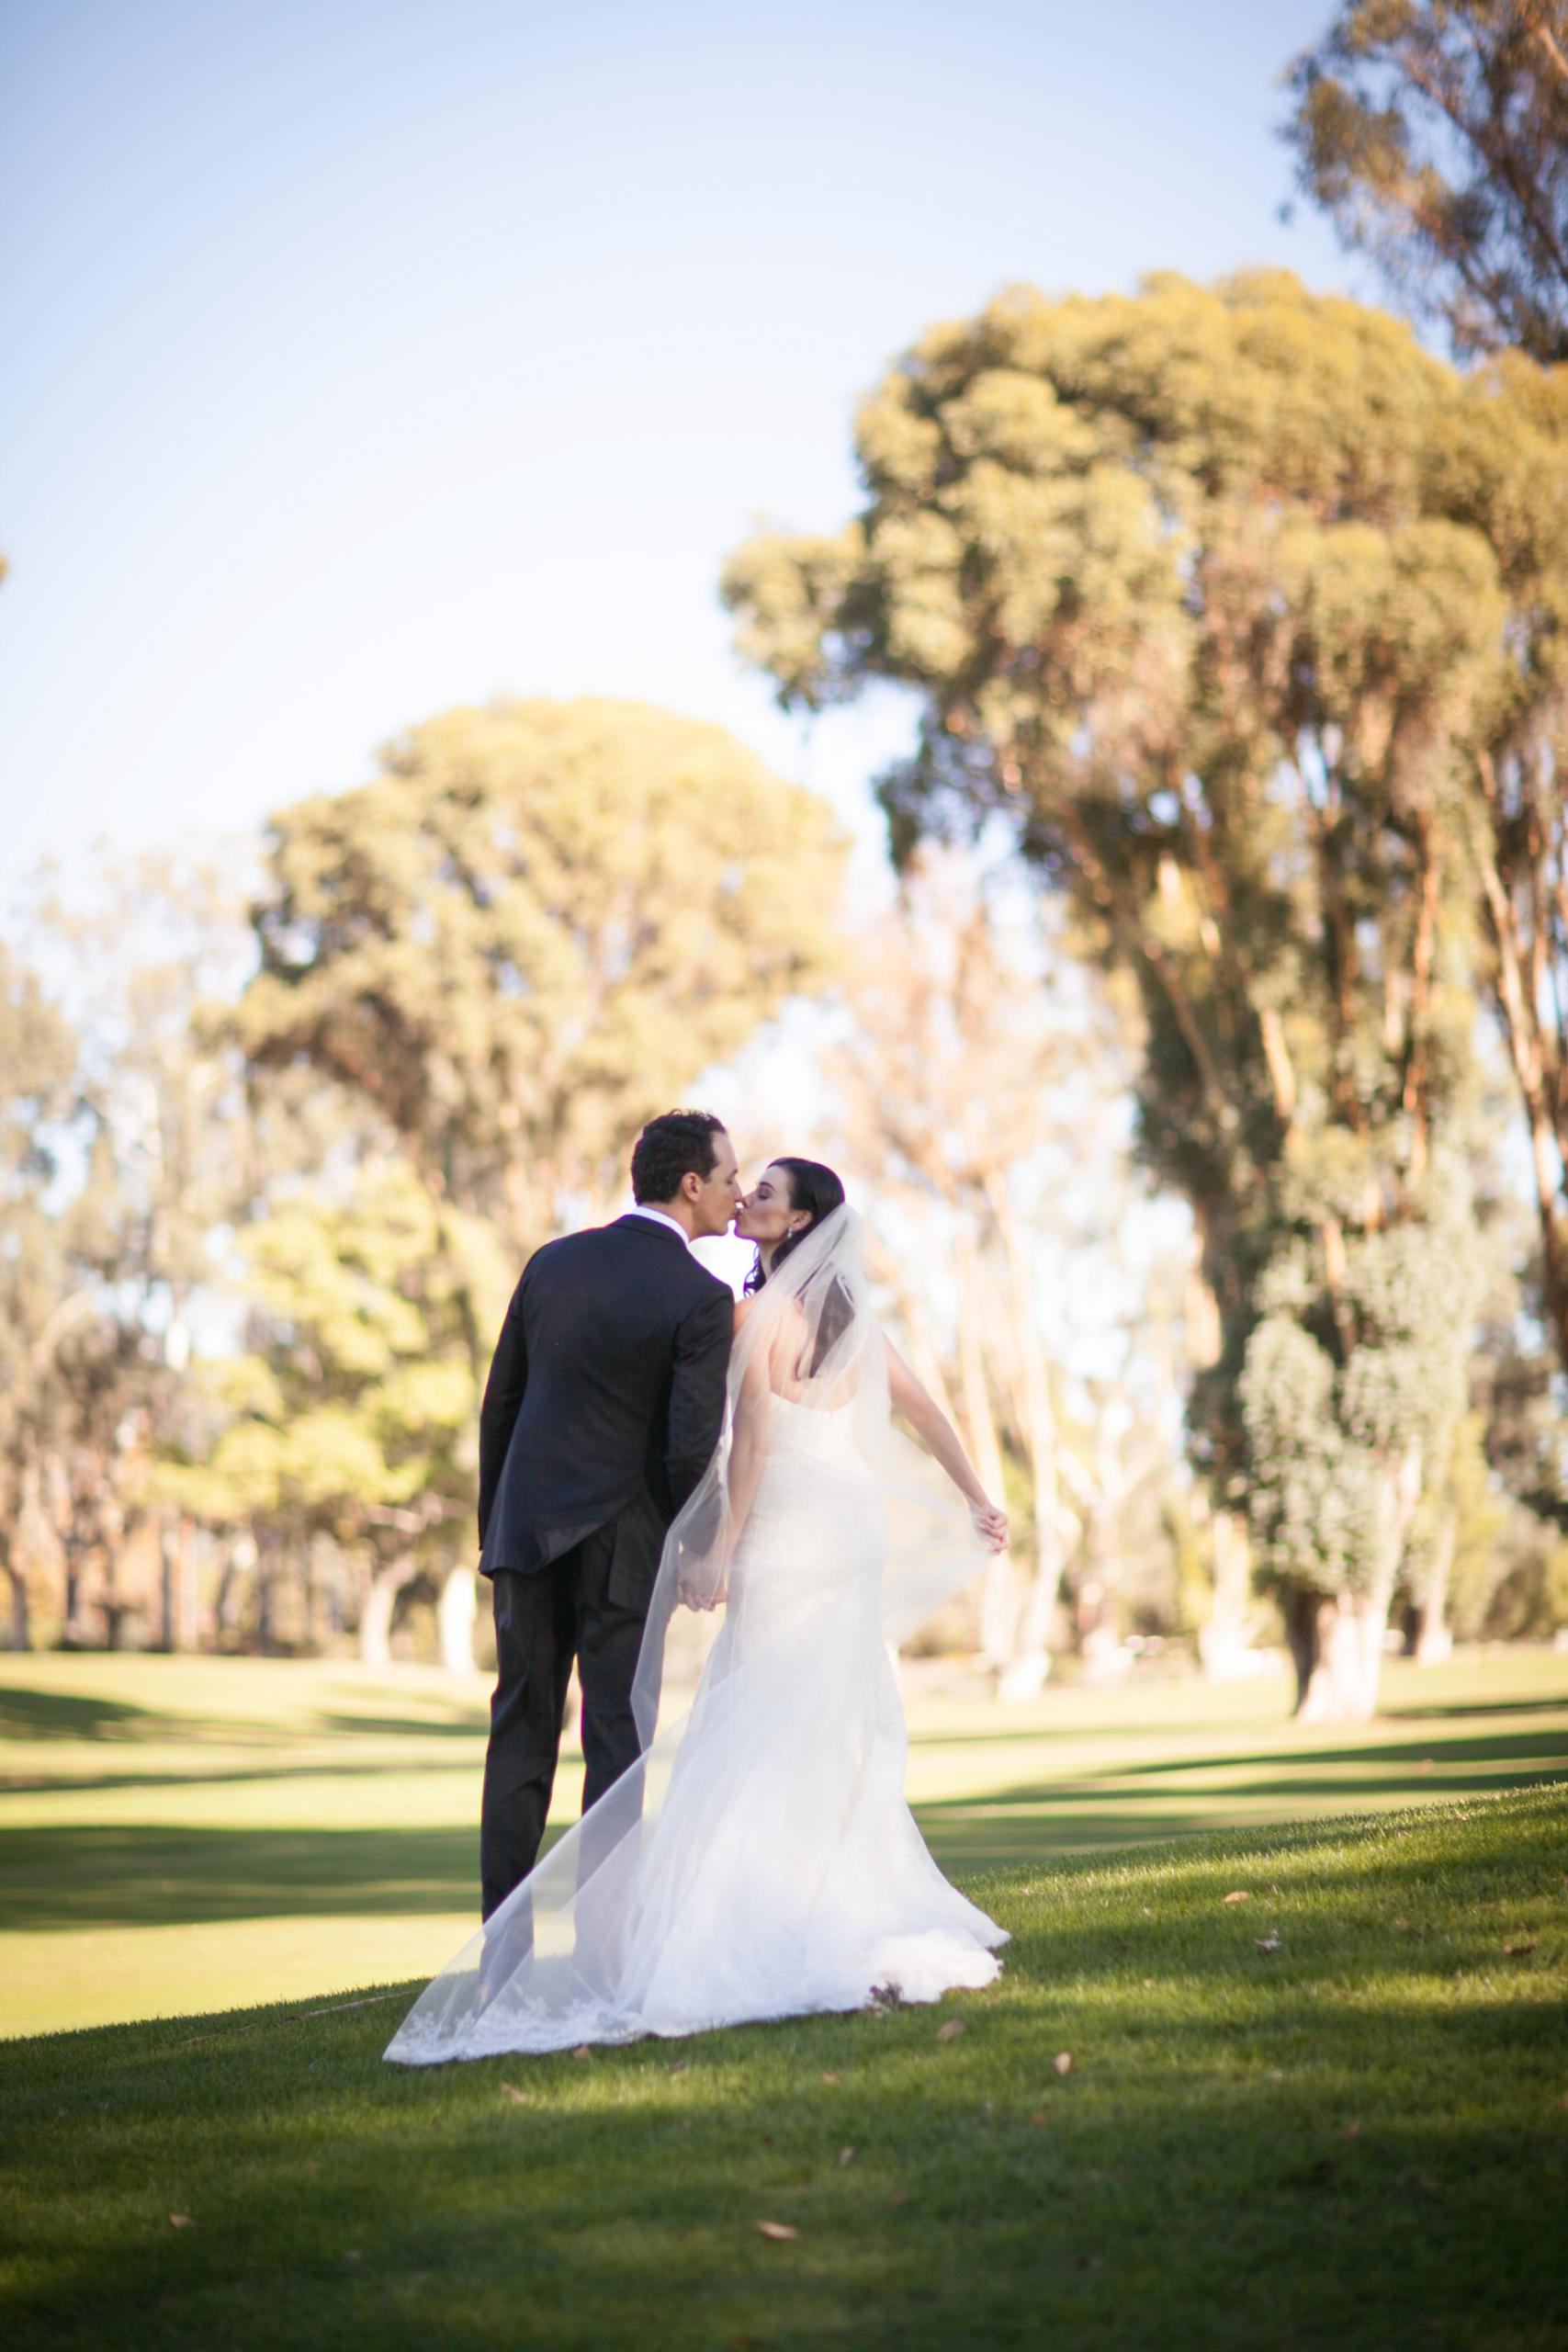 Ojai Valley Inn and Spa Wedding | Miki & Sonja Photography | mikiandsonja.com